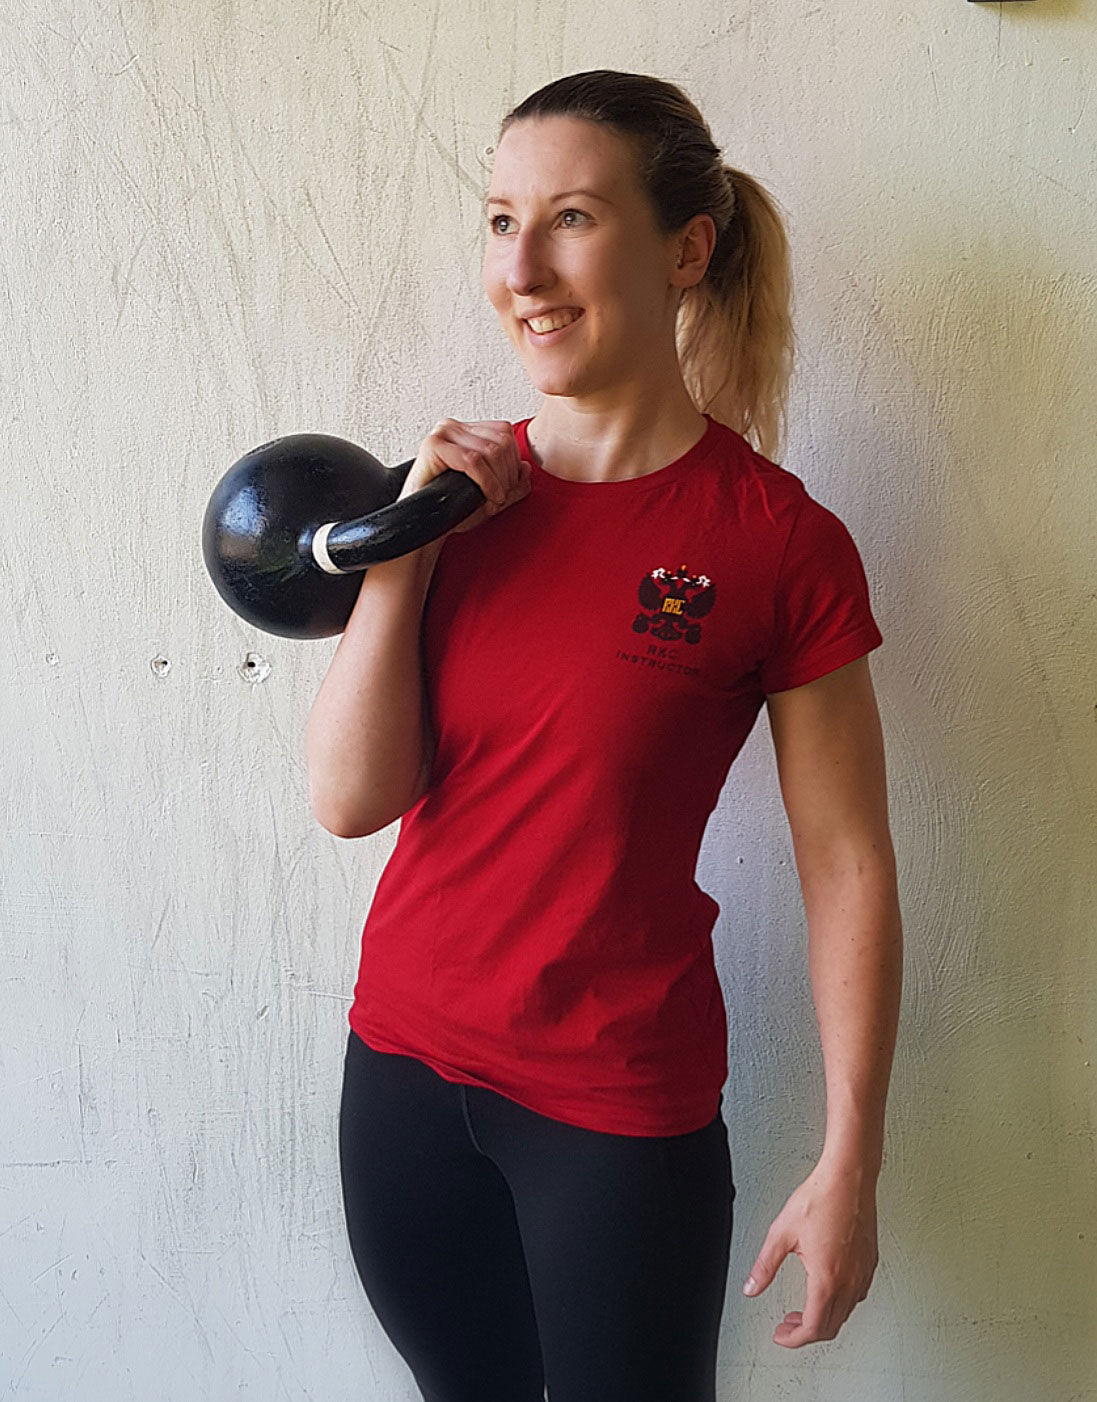 Anna Vietz, RKC Instructor